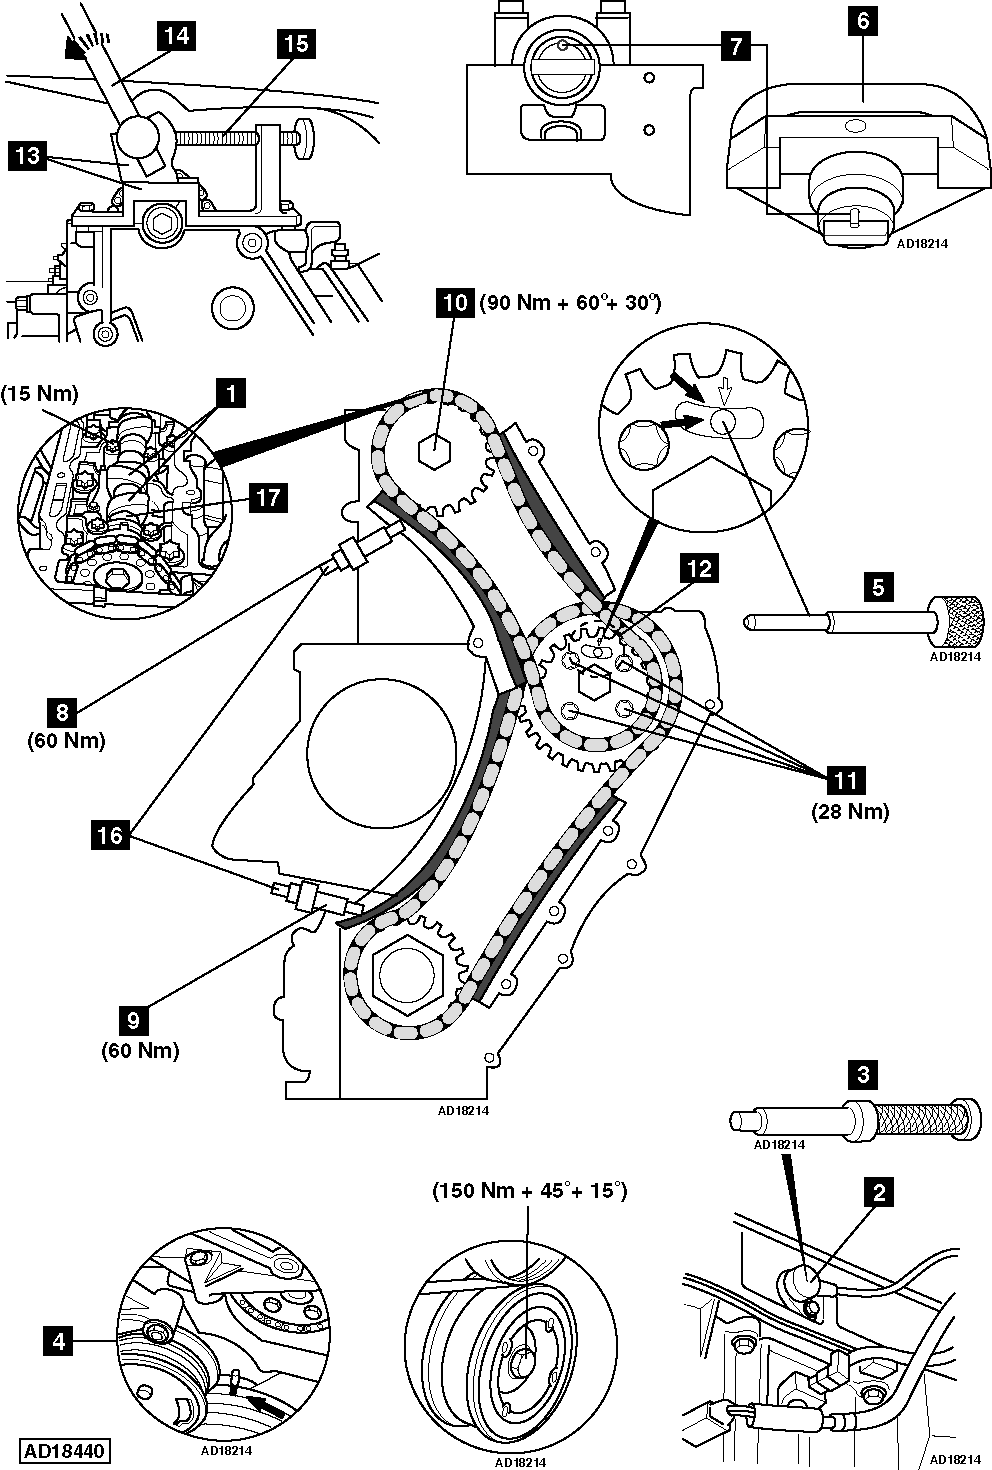 to replace timing chain on vauxhall/opel astra g 2.0 dti, Wiring diagram